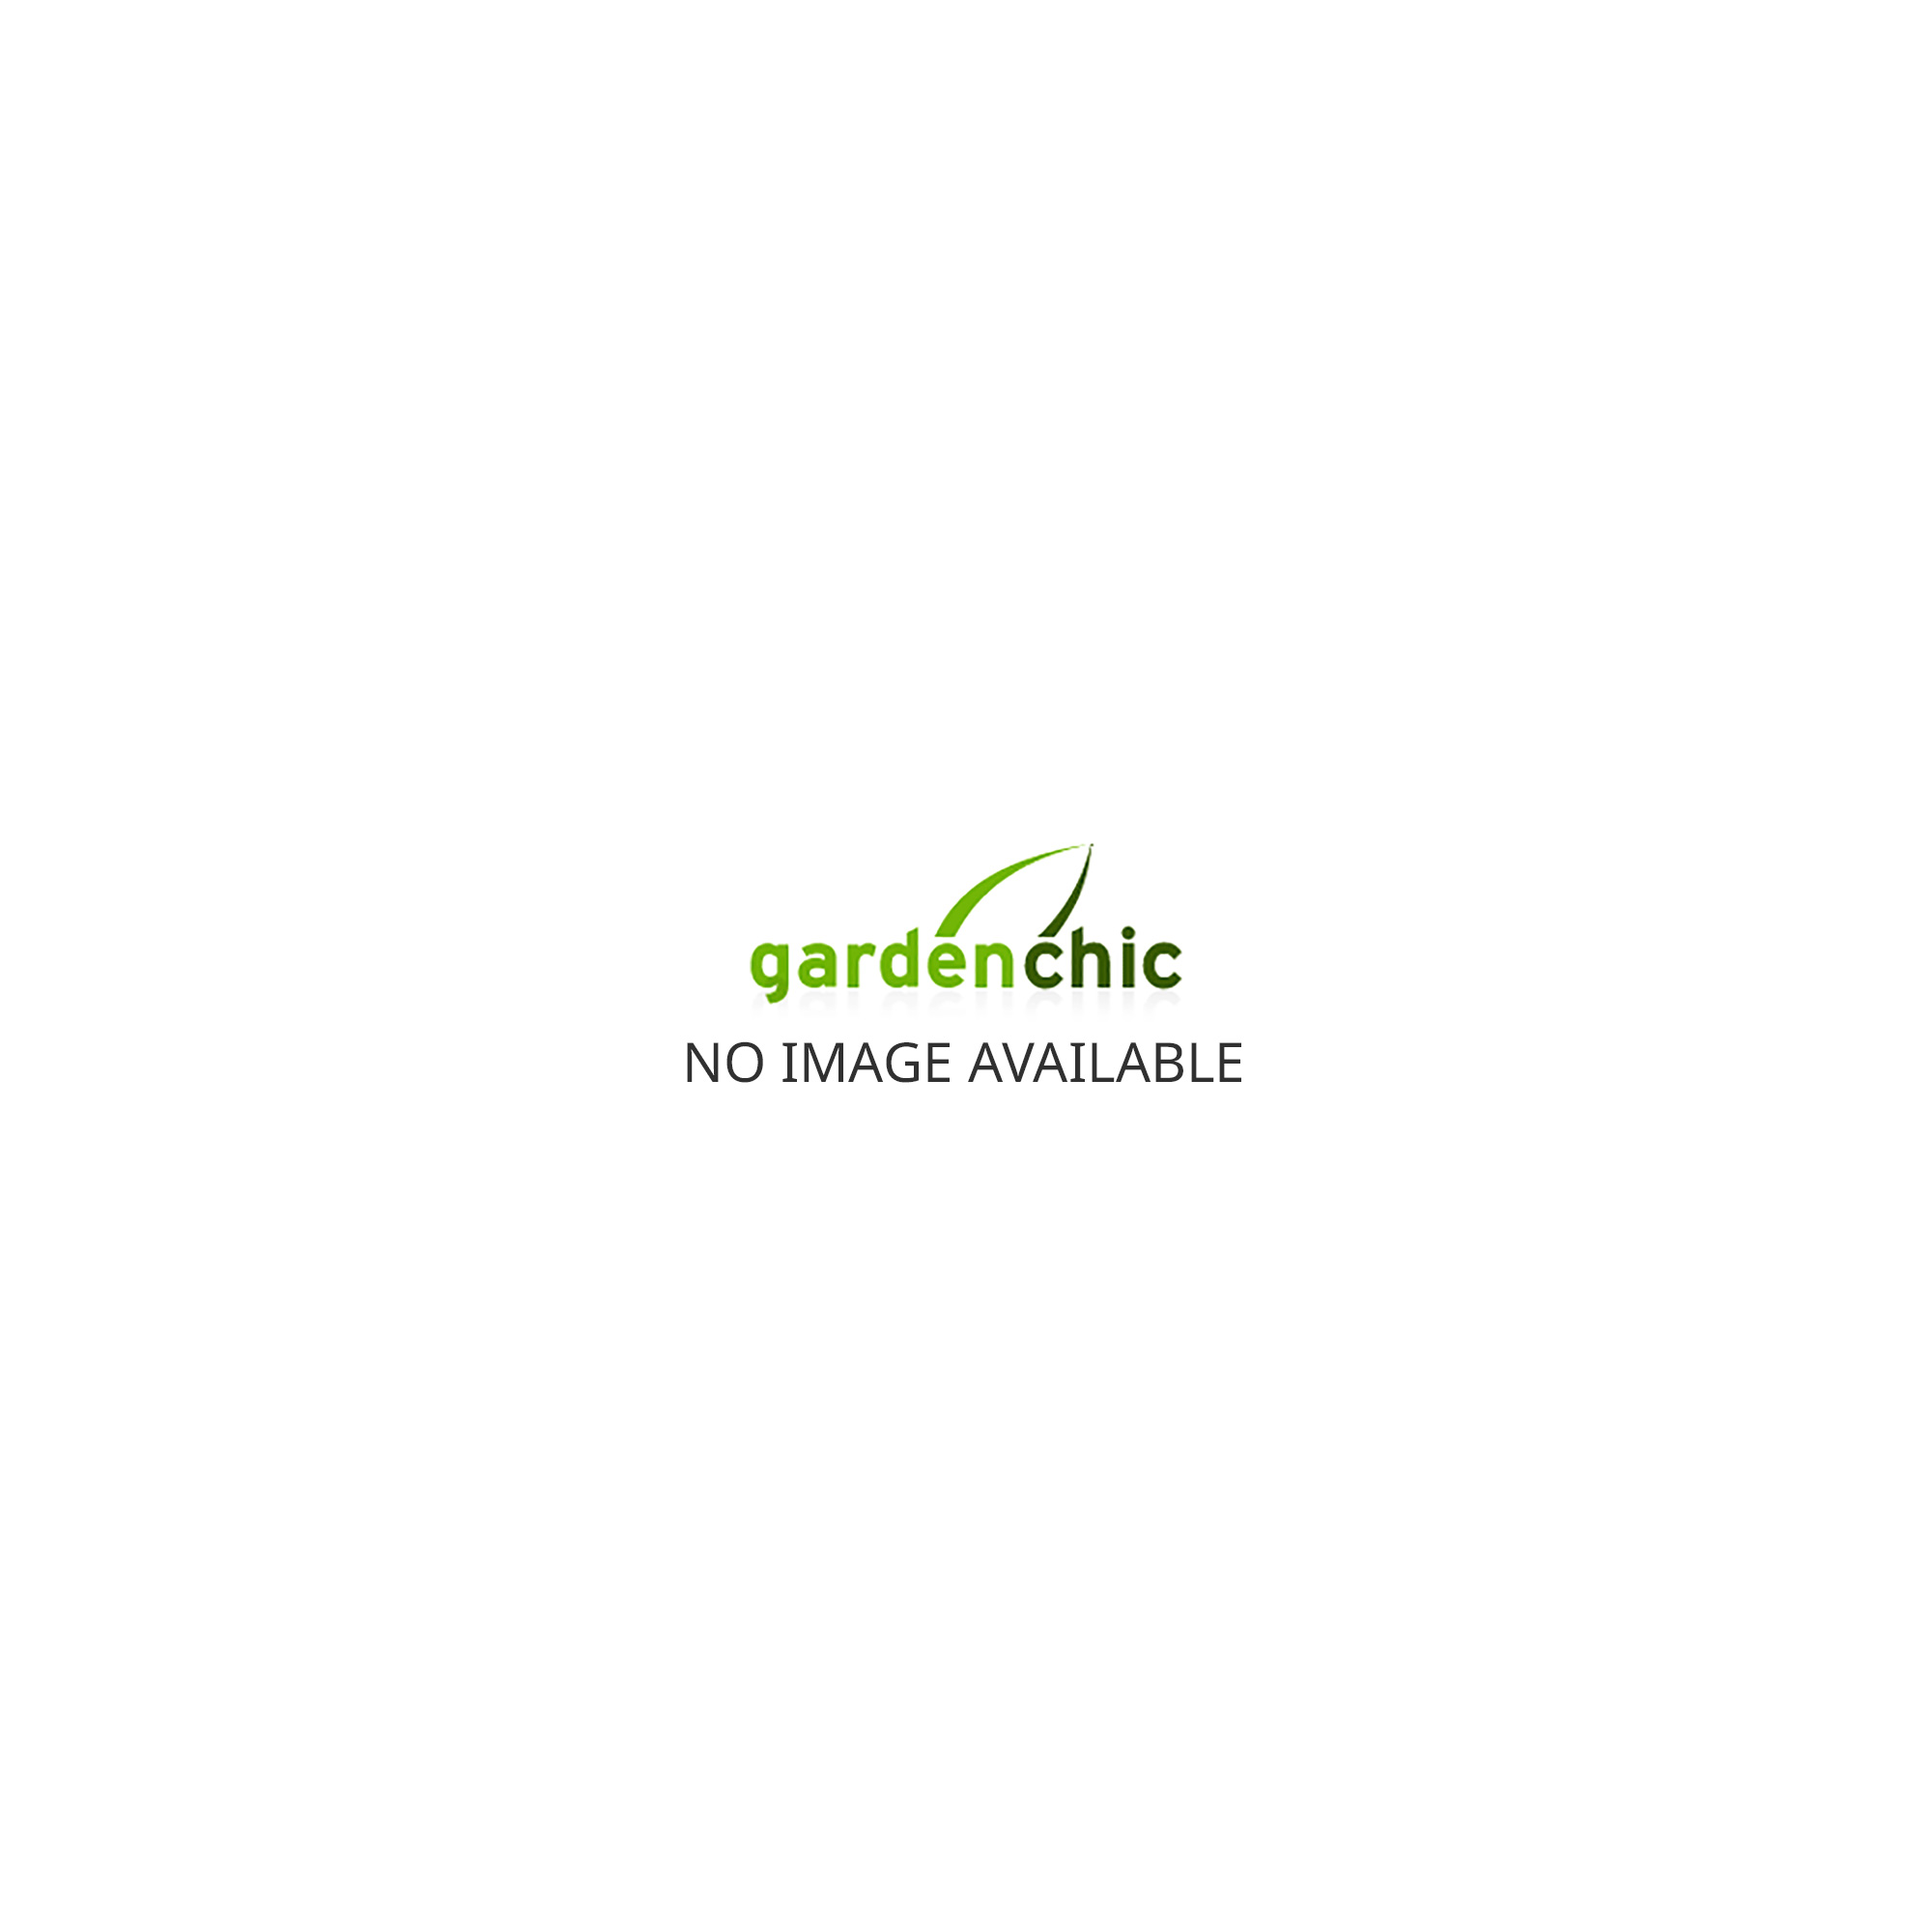 Apollo 2500 Greenhouse - Silver FREE Staging until APRIL 2018